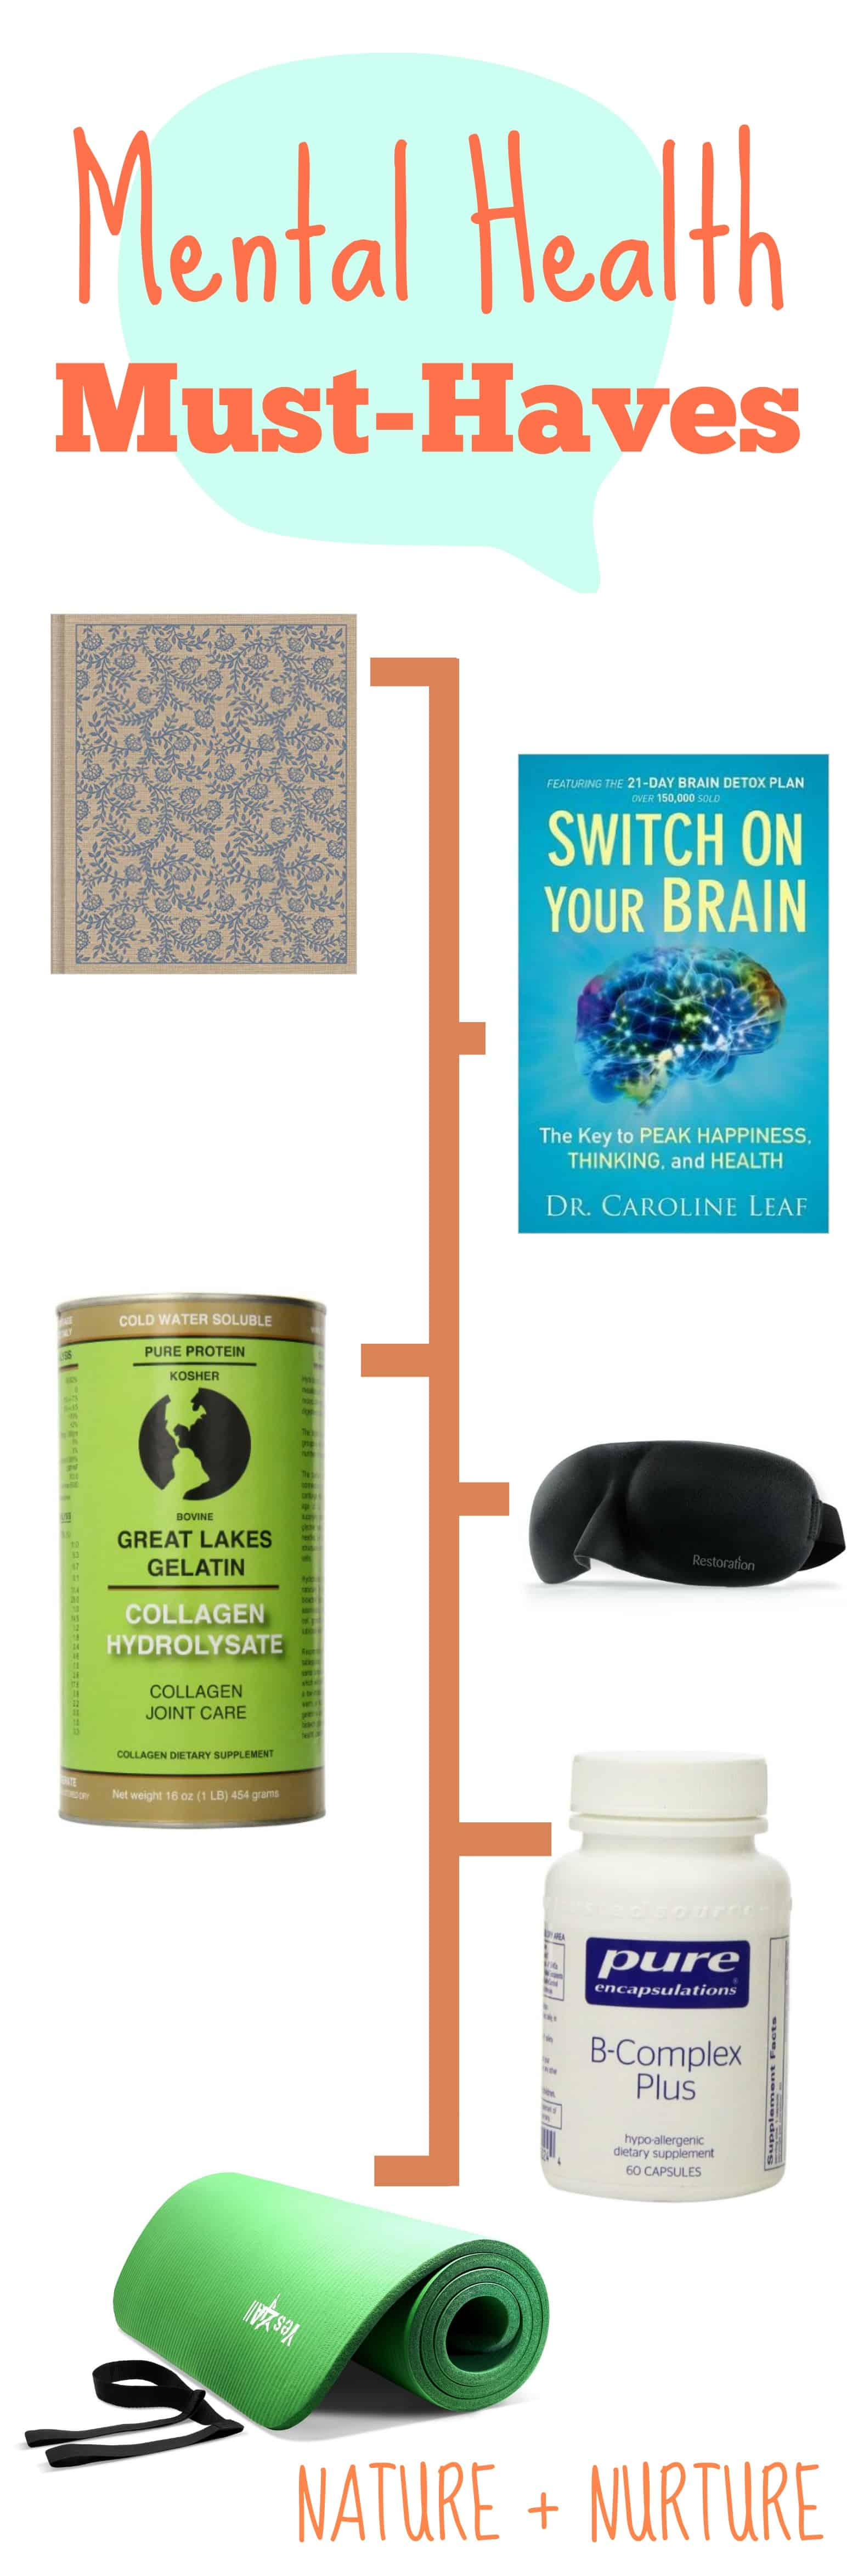 Mental Health Must-Haves